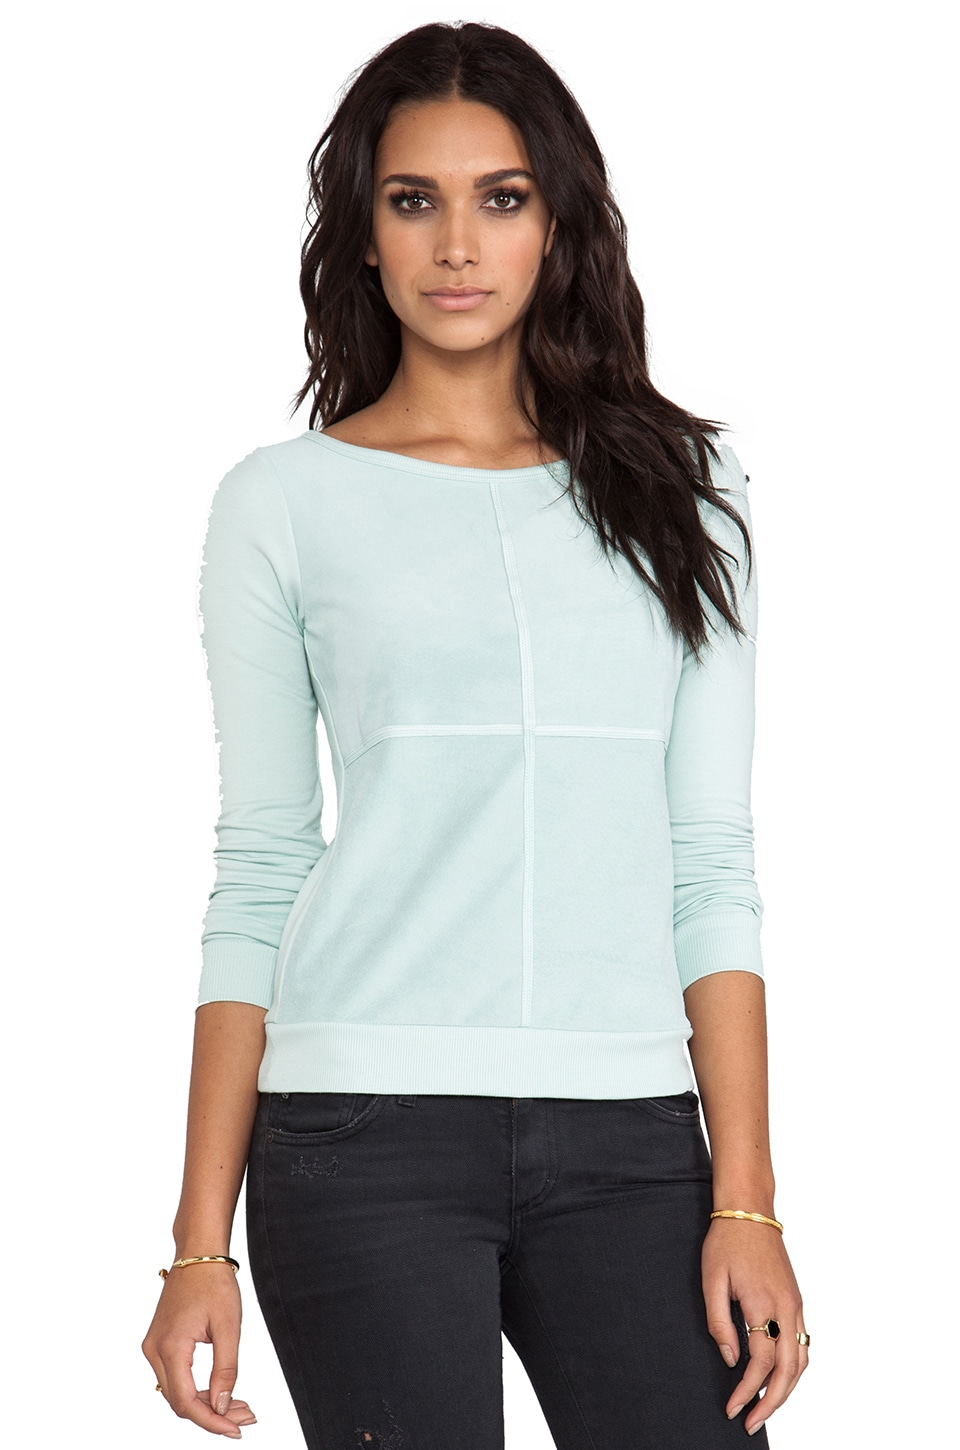 Bailey 44 Katherine Top in Mint